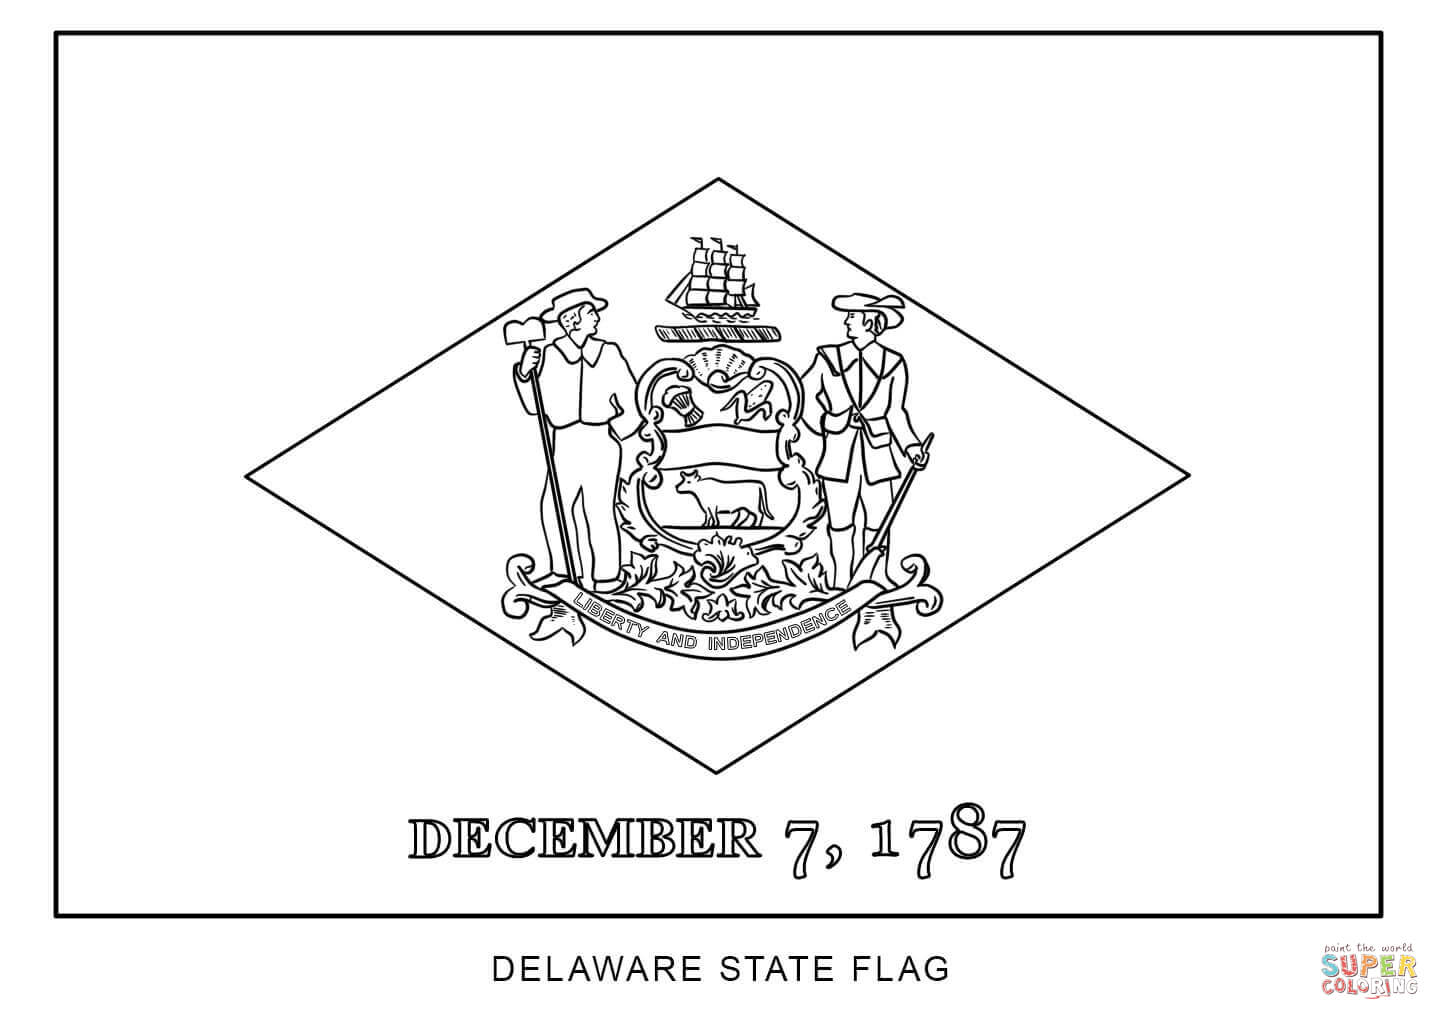 vermont state flag coloring page vermont coloring pages at getcoloringscom free vermont flag state coloring page